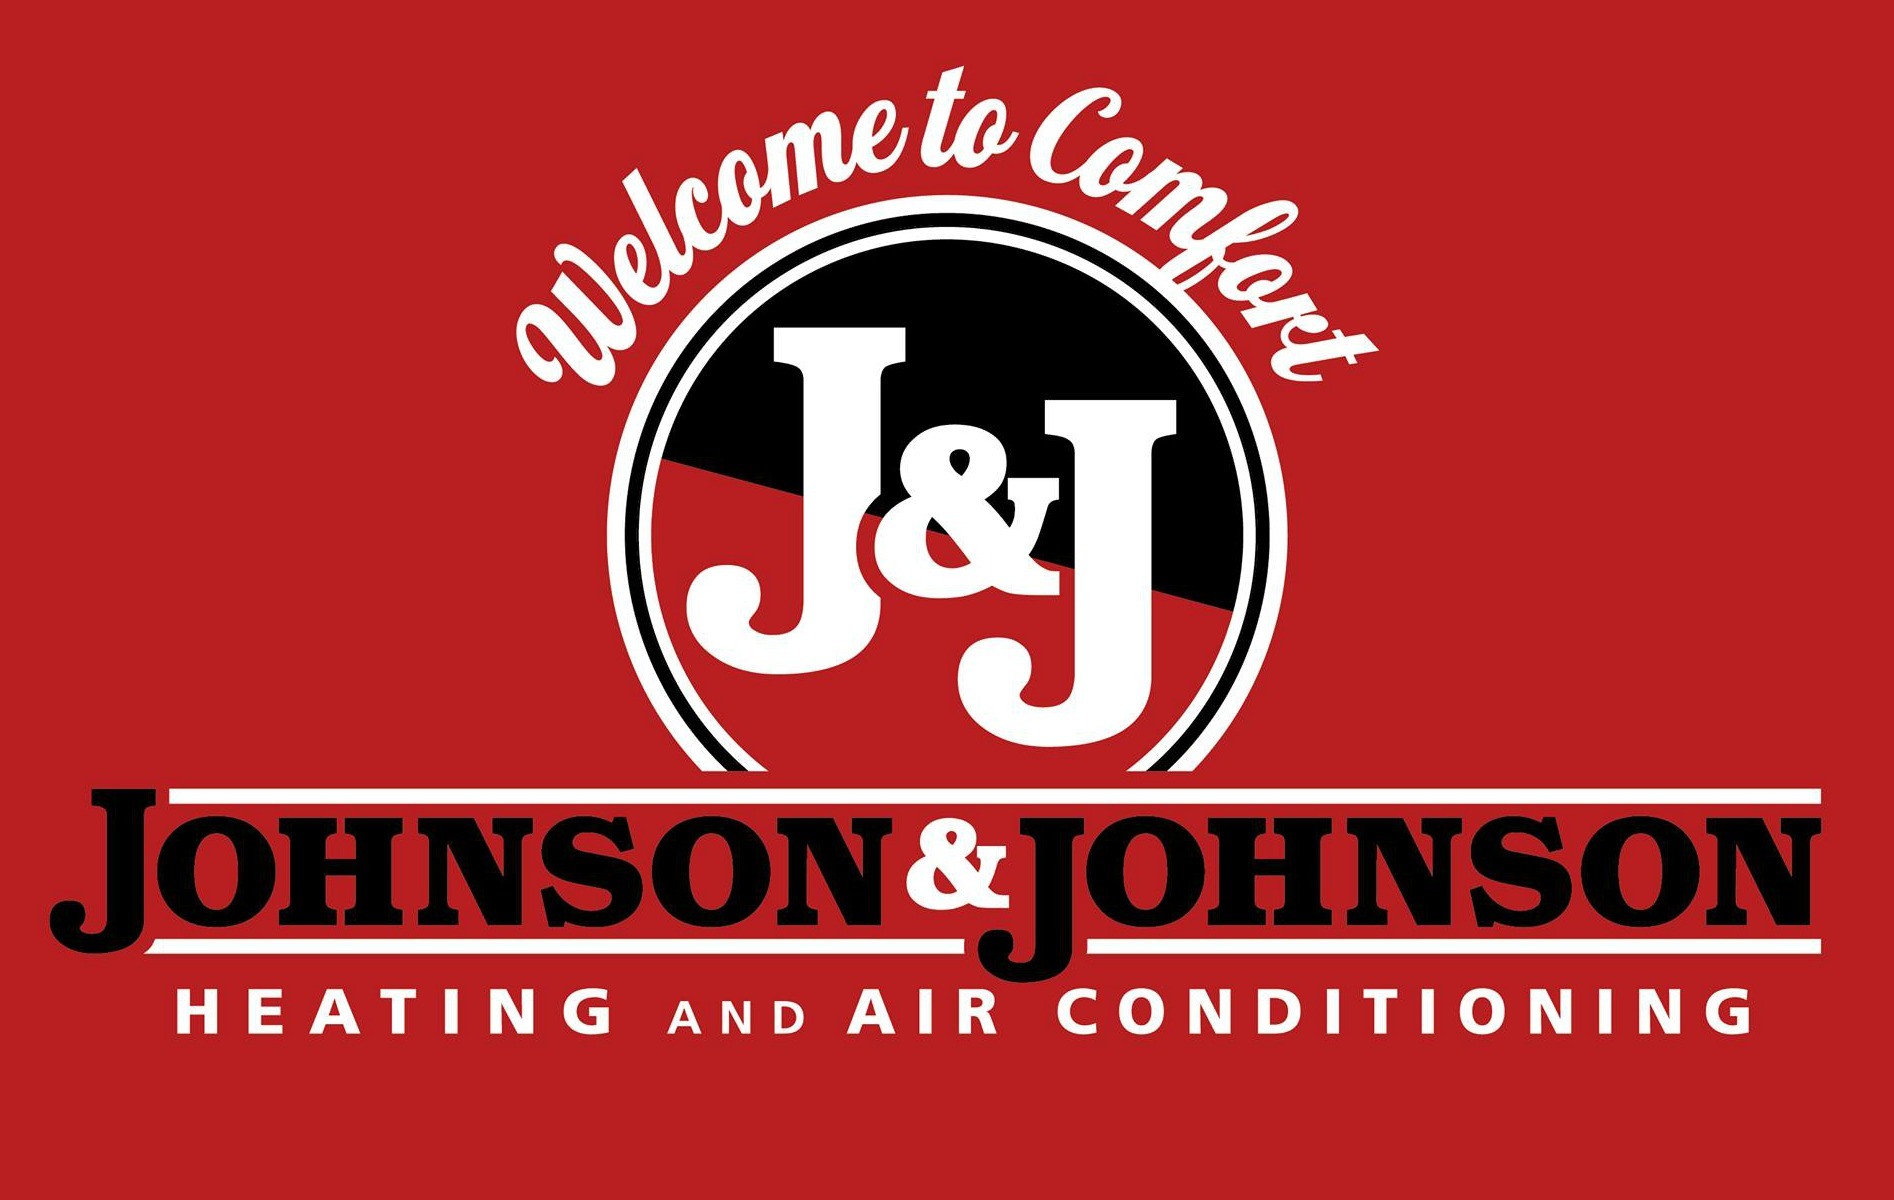 Johnson Amp Johnson Heating Amp Air Conditioning Martinsburg